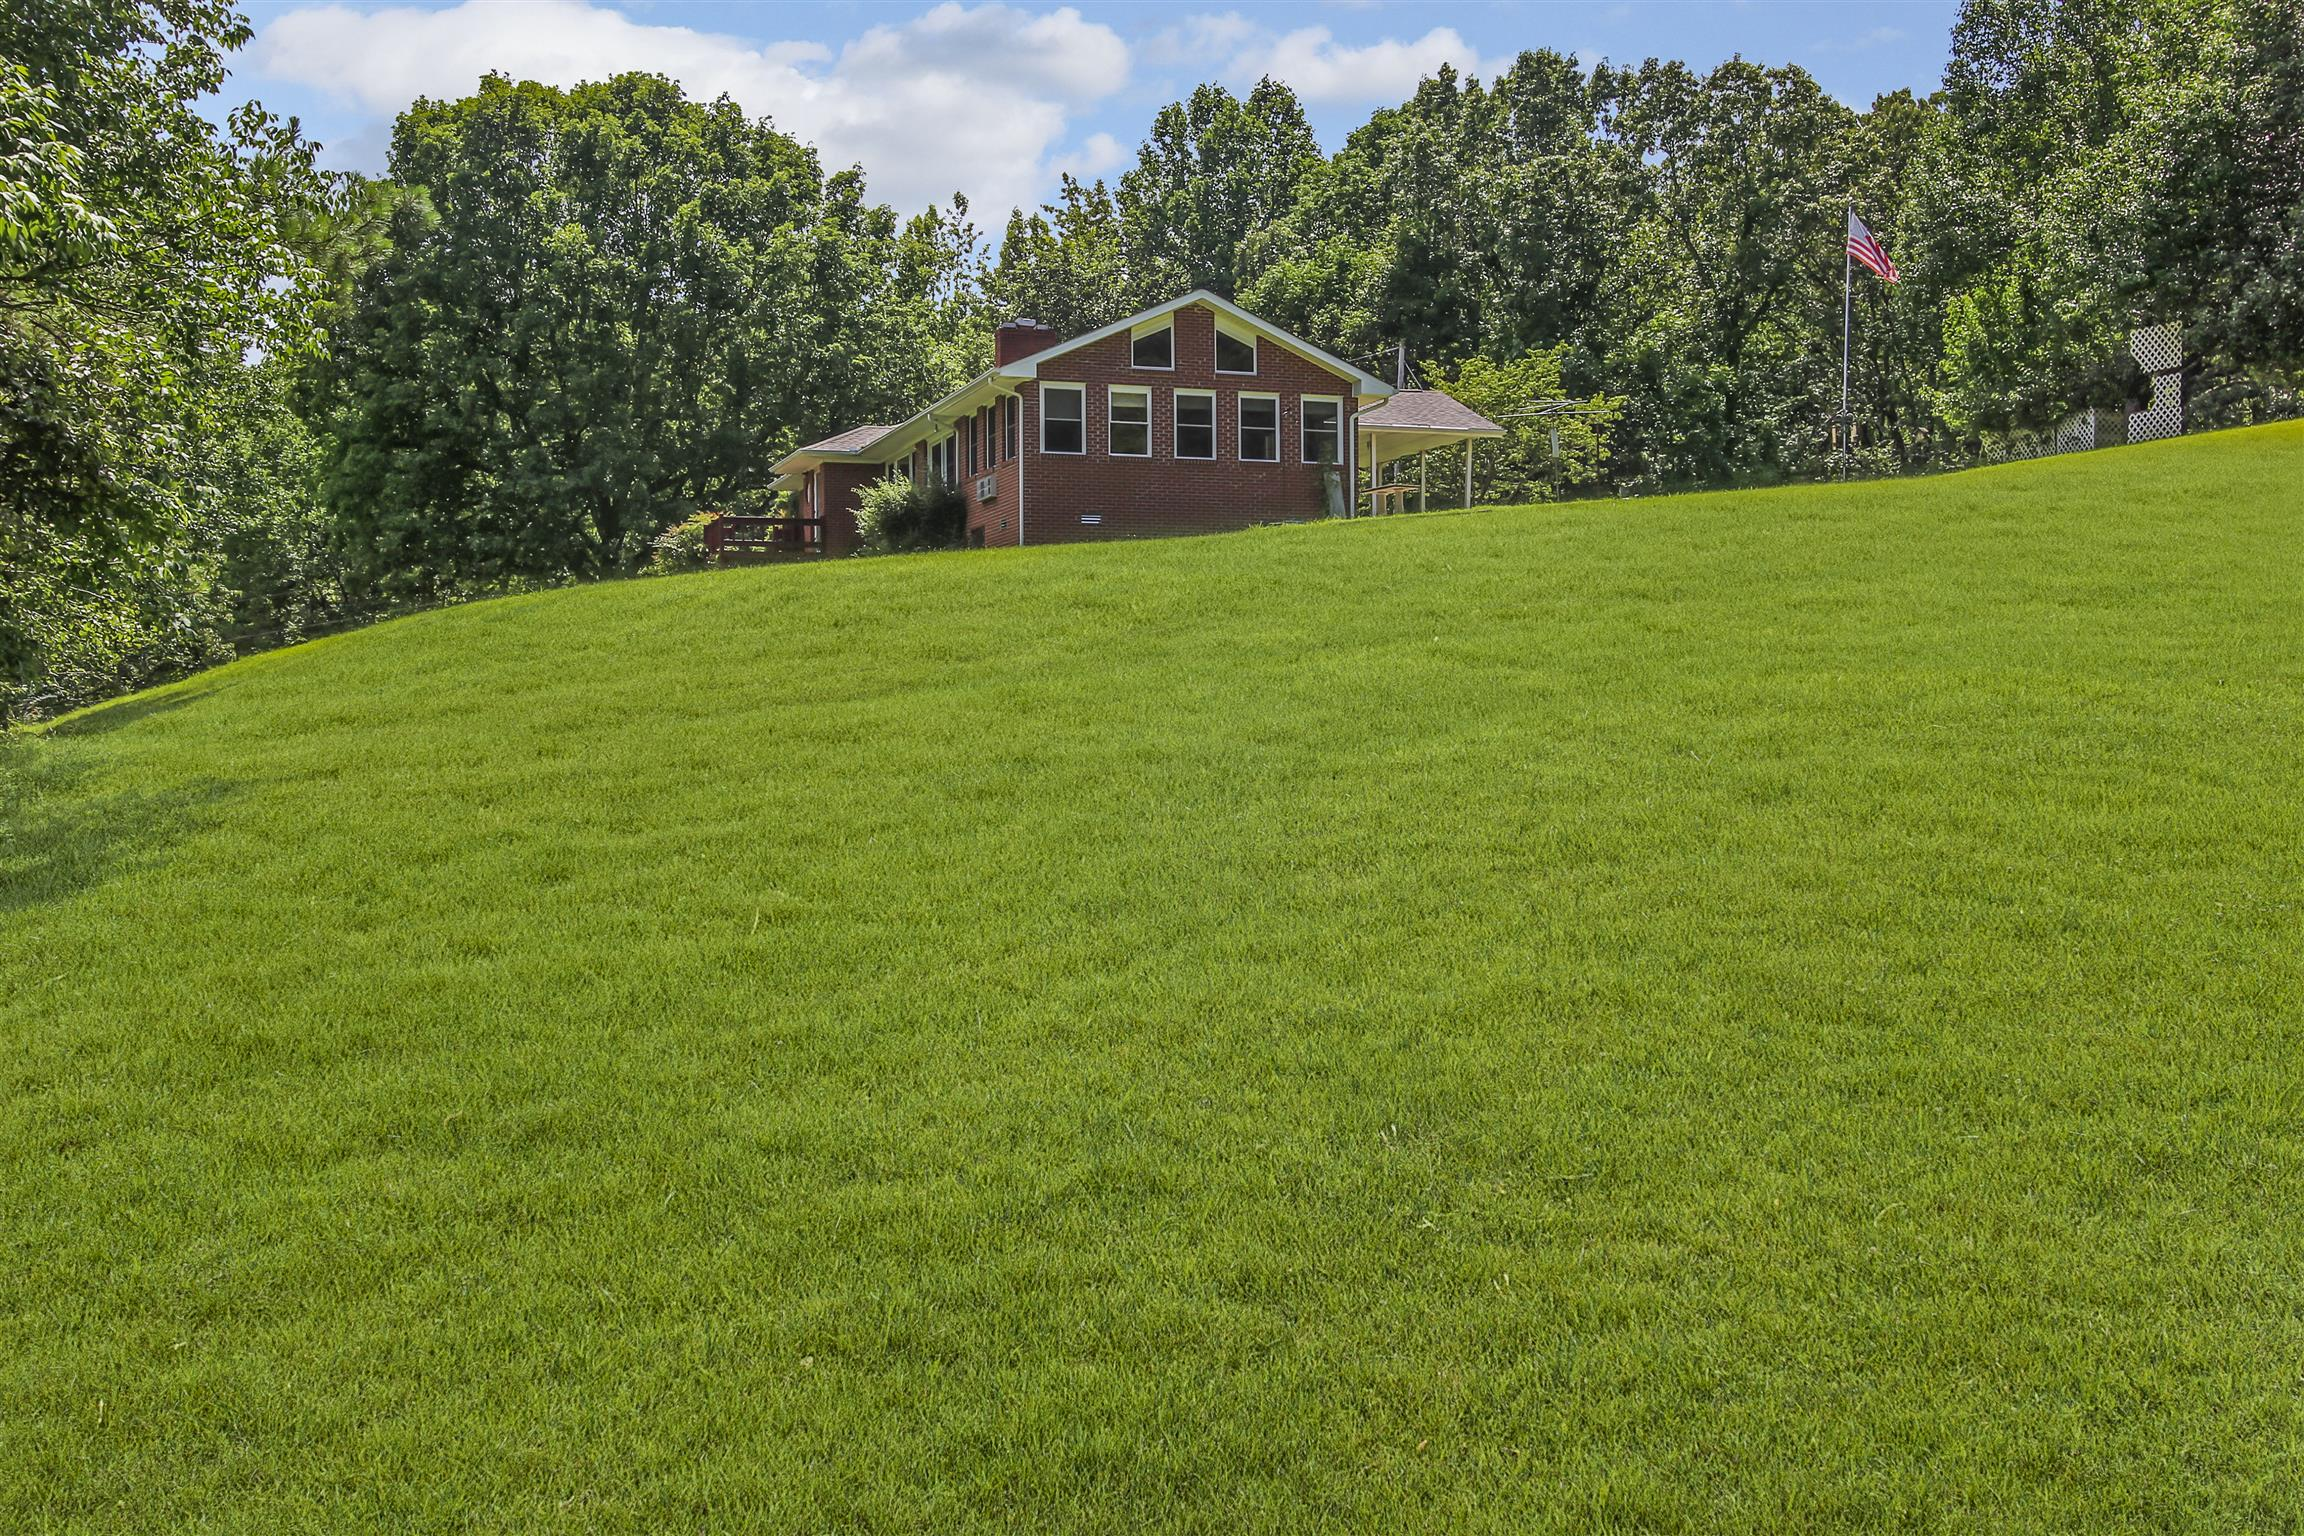 201 Valley View Rd, Dover, TN 37058 - Dover, TN real estate listing